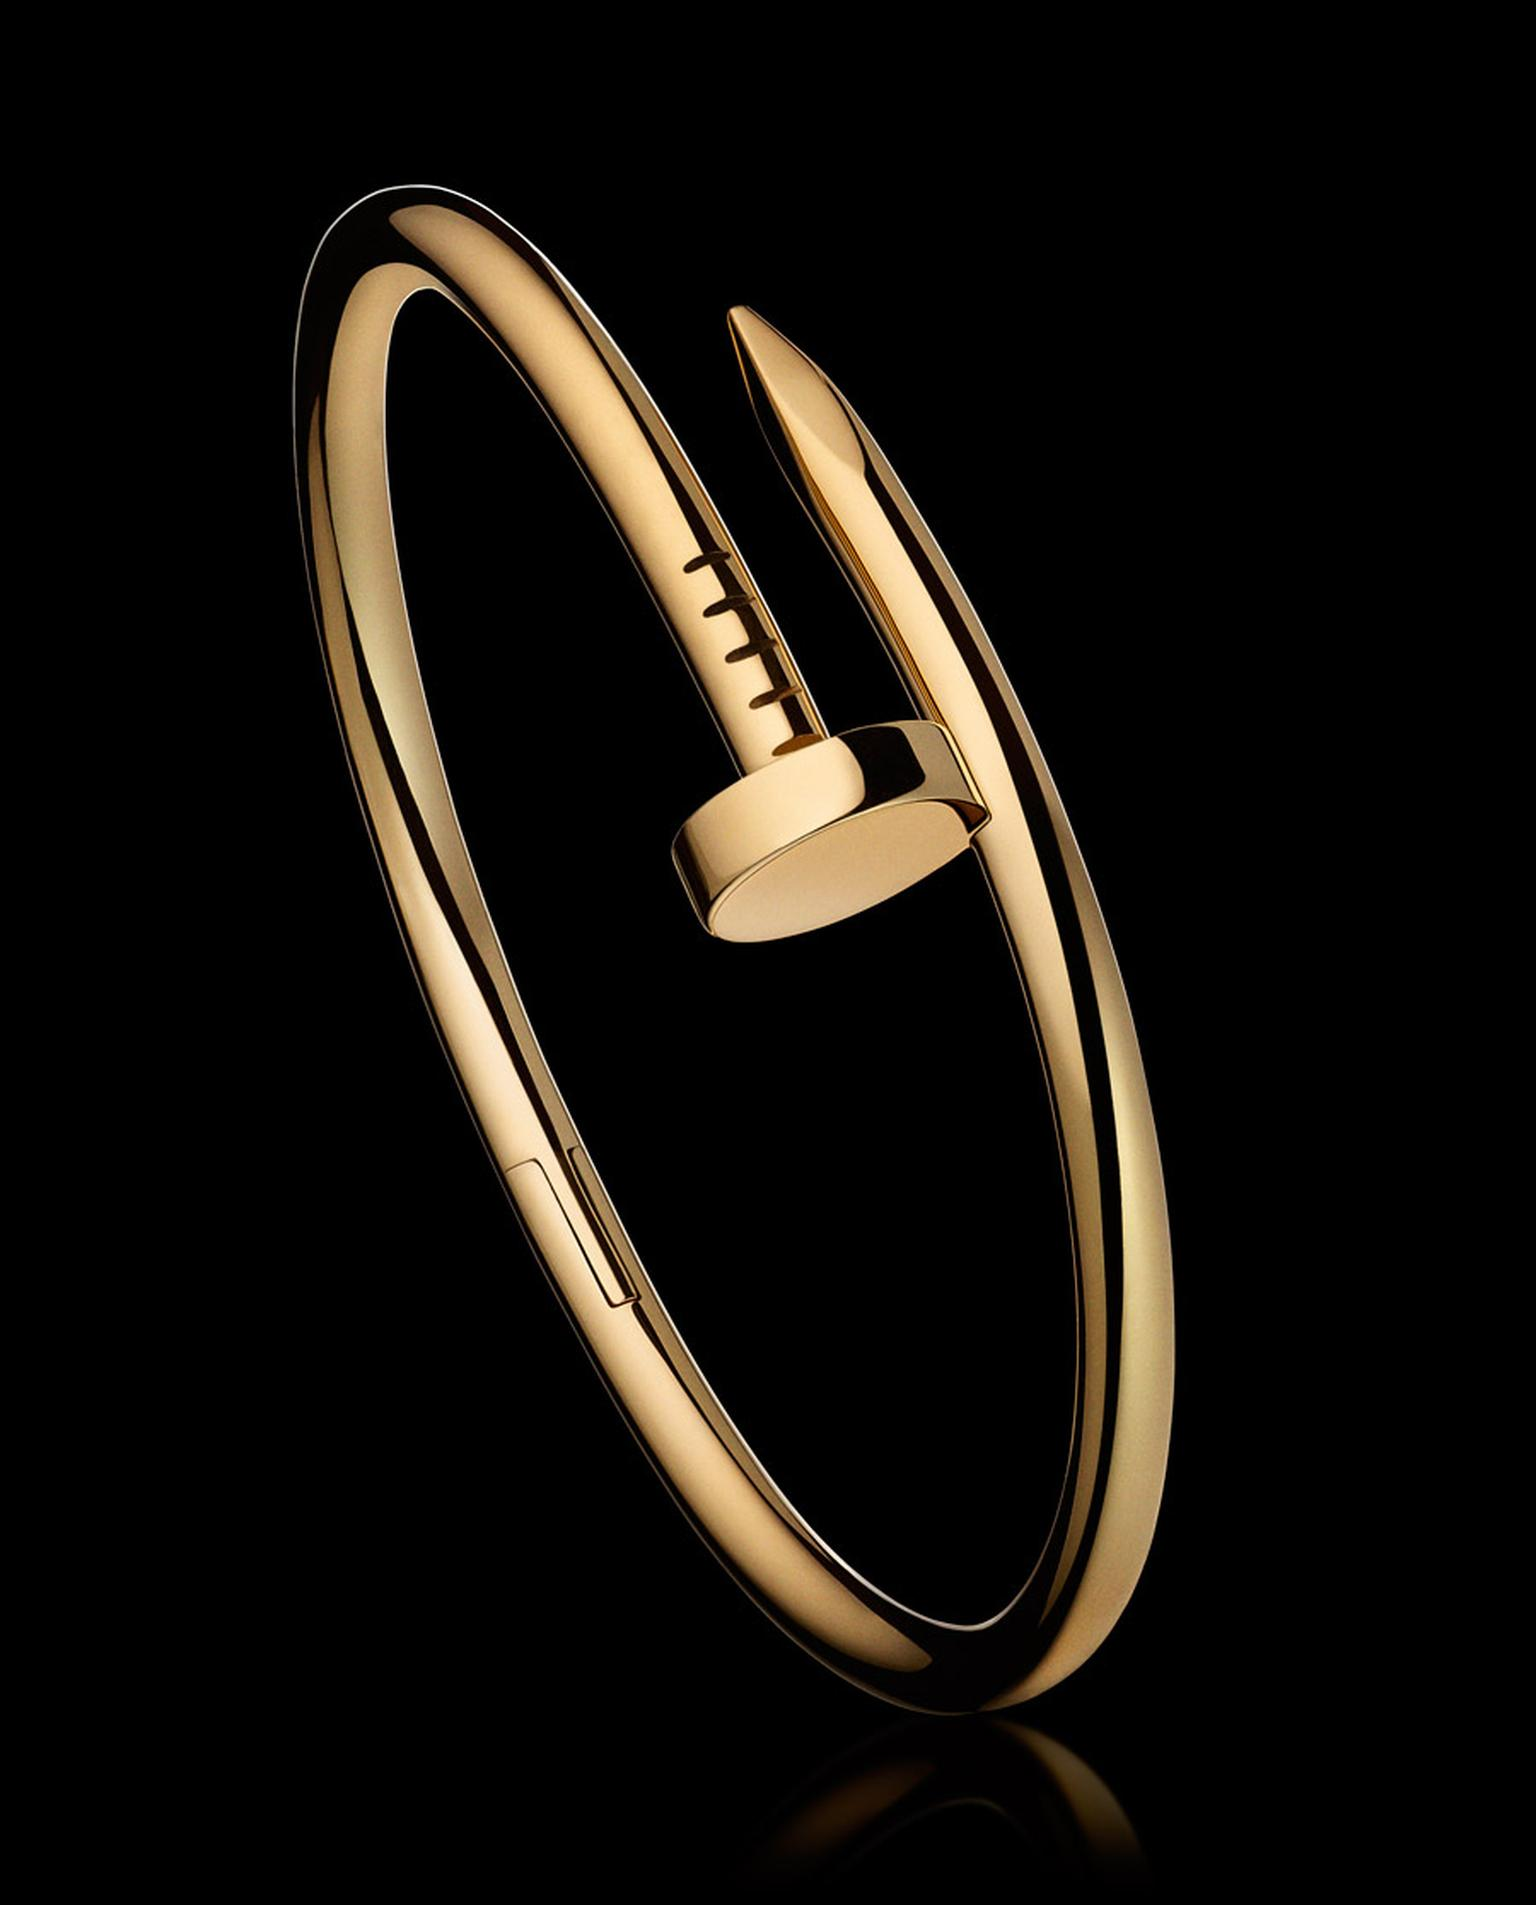 Cartier-Juste-un-Clou-small-yellow-gold-braclet2.jpg